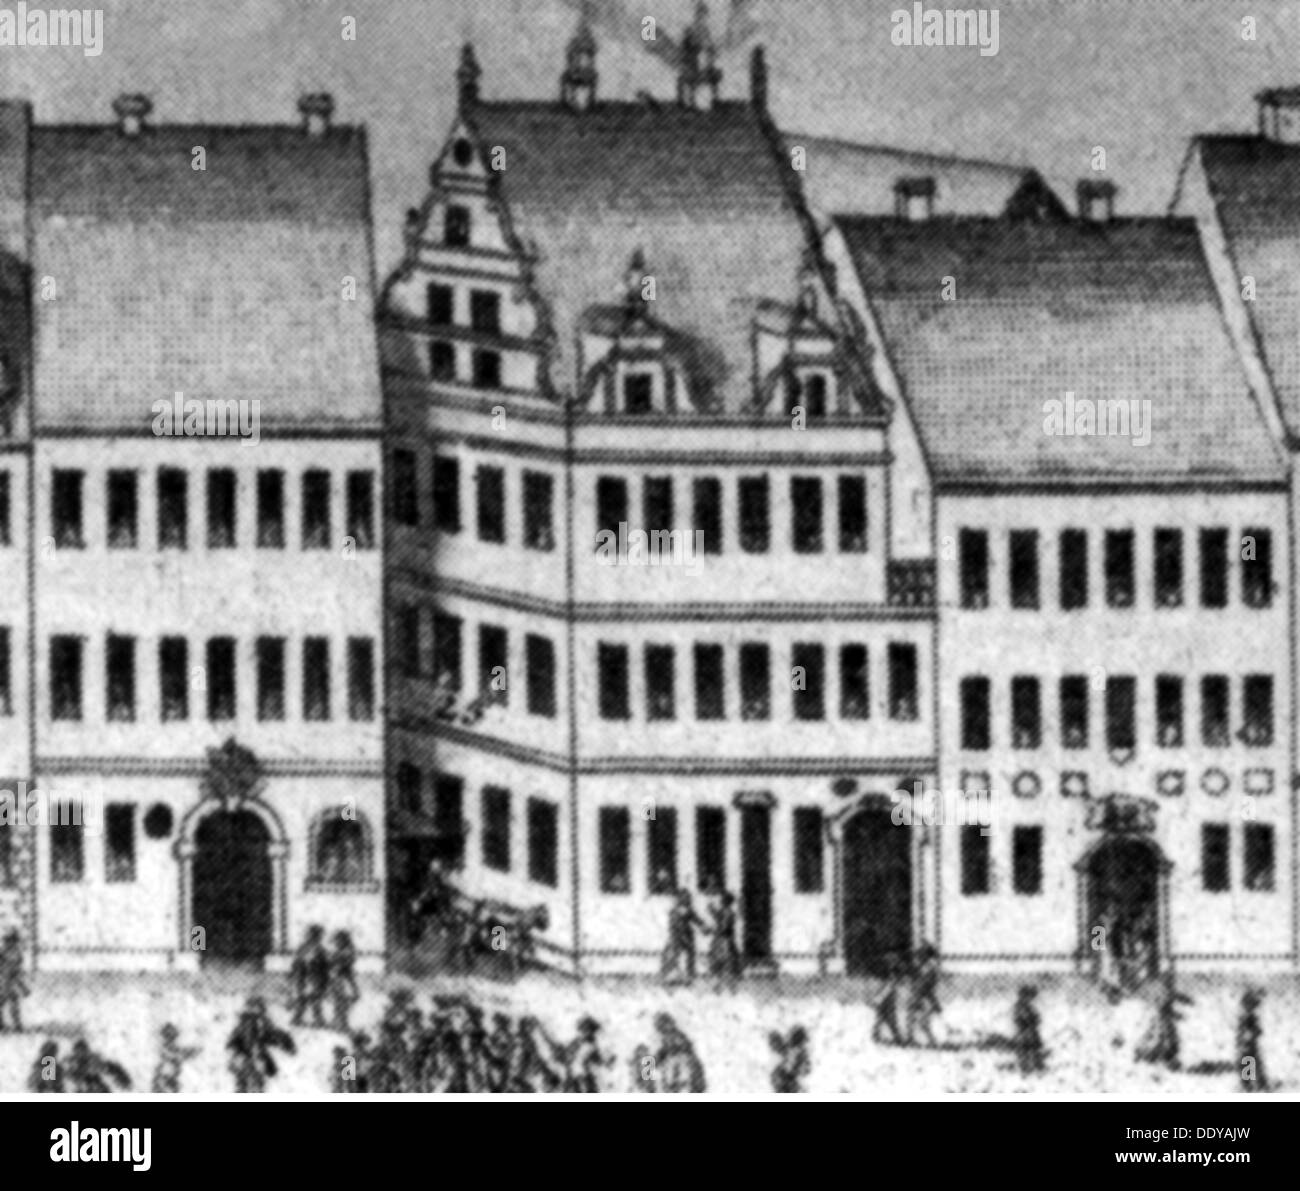 geography / travel, Germany, Wittenberg, building, Cranach Pharmacy, exterior view, copper engraving, 17th century, 17th century, graphic, graphics, facade, facades, pharmacy, pharmacies, drugstore, chemist's shop, drugstores, chemist's shops, drug store, drug stores, salesroom, salesrooms, shops, retail store, retail outlet, retail stores, retail outlets, shop, trade, economy, pharmaceuticals, pharmaceutical products, preparation, compound, pharmaceutical, remedy, remedies, medicine, medicines, pharmaceutics, pharmacology, Saxony, Central Europe, Euro, Artist's Copyright has not to be cleared - Stock Image